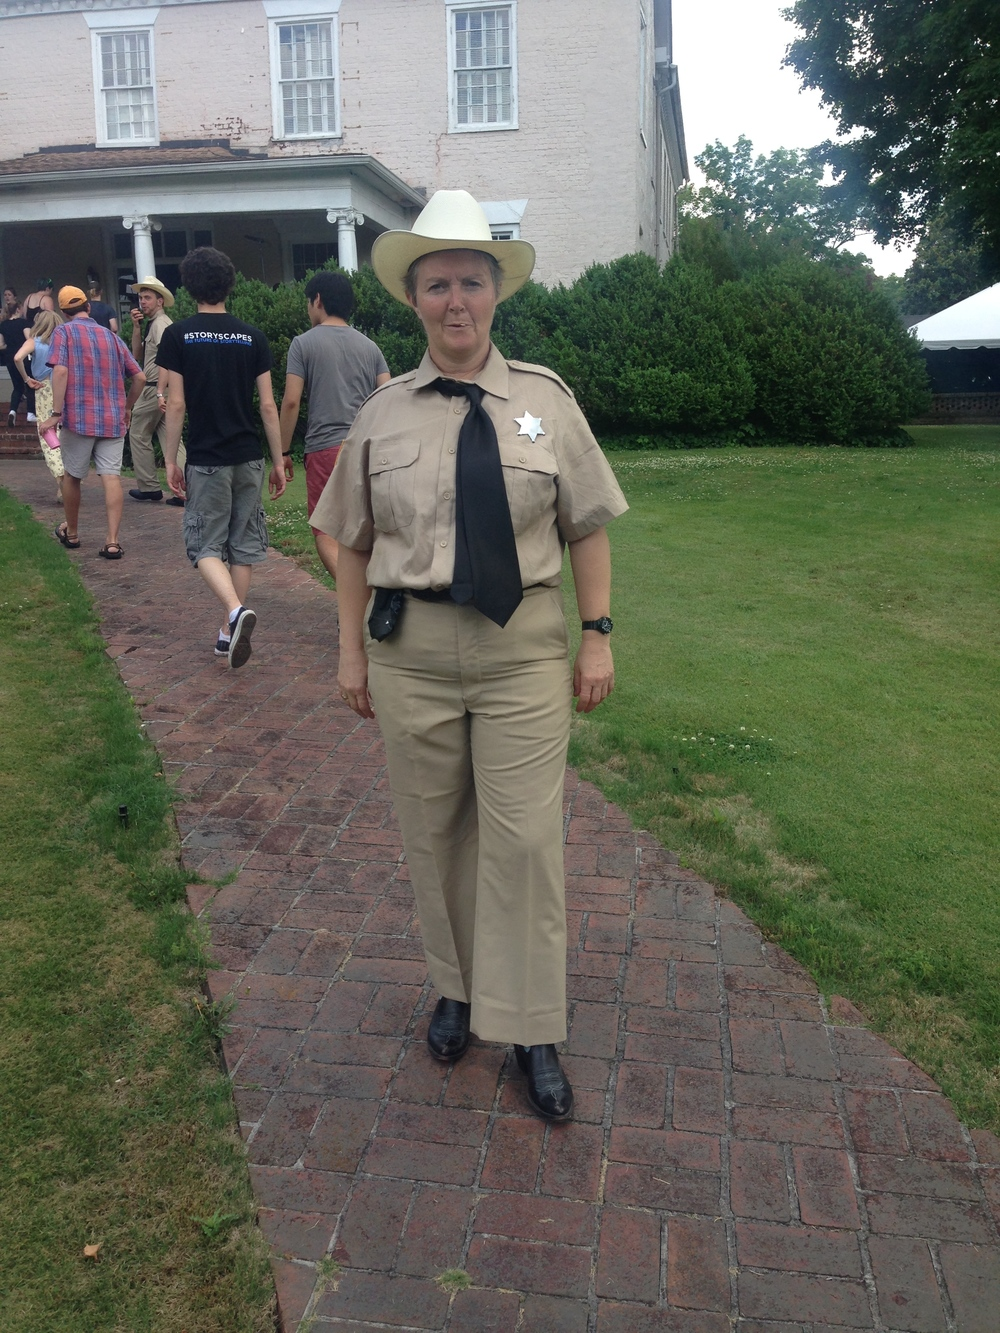 Stephanie strutting her stuff as Sheriff Nancy Nulty.